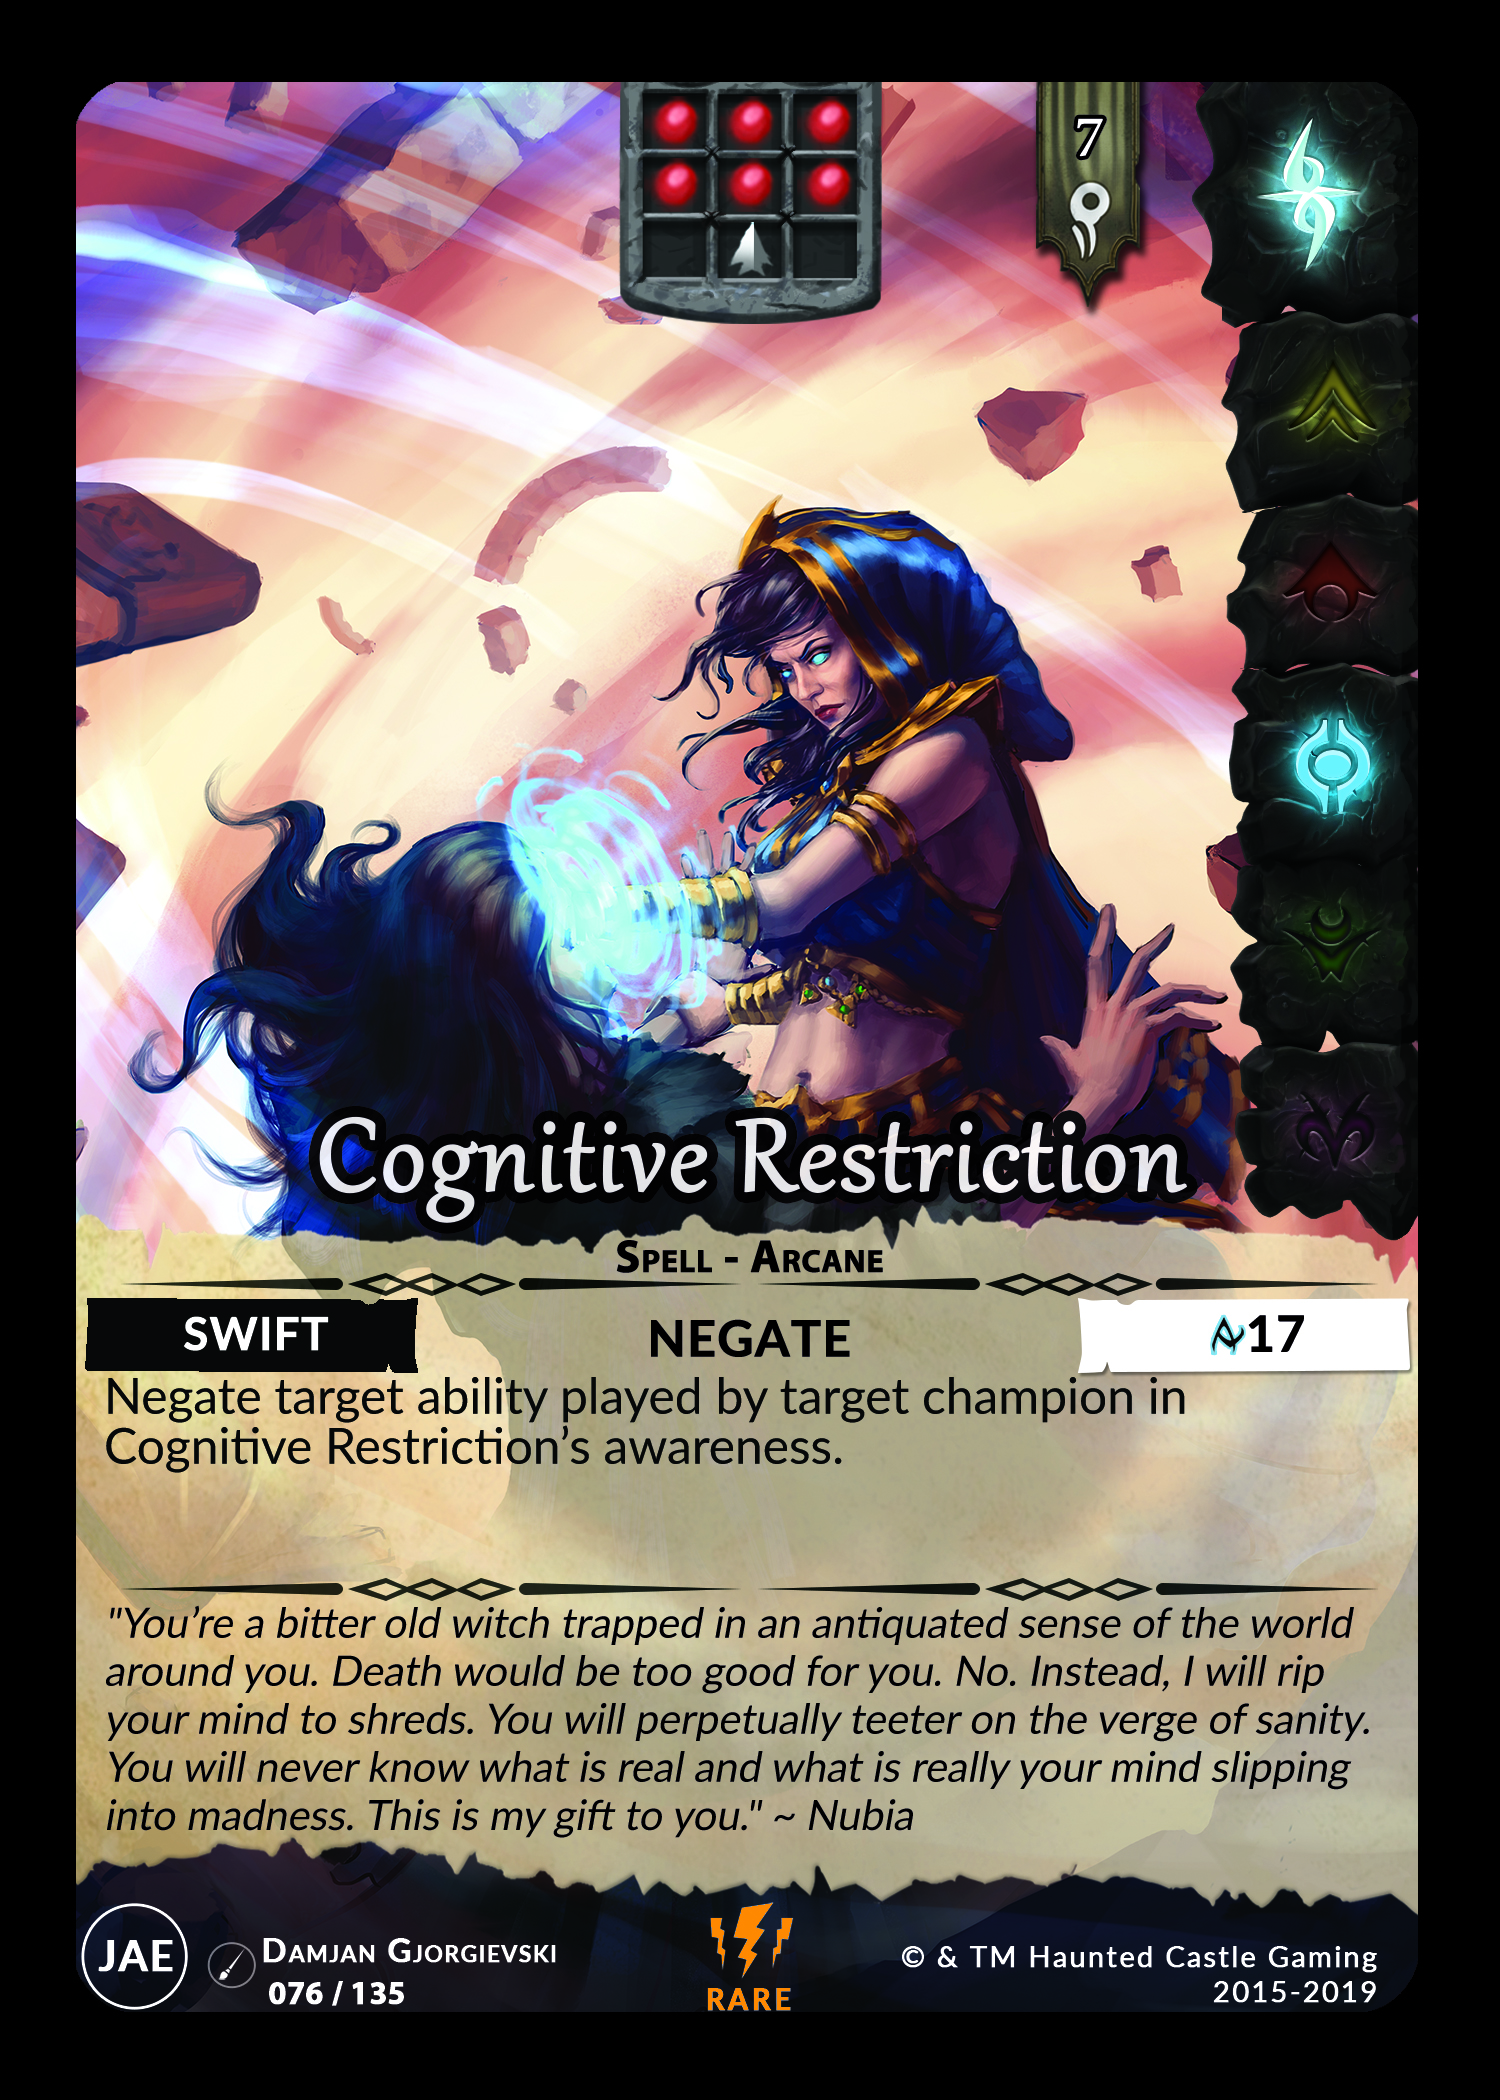 076-Cognitive Restriction.jpg